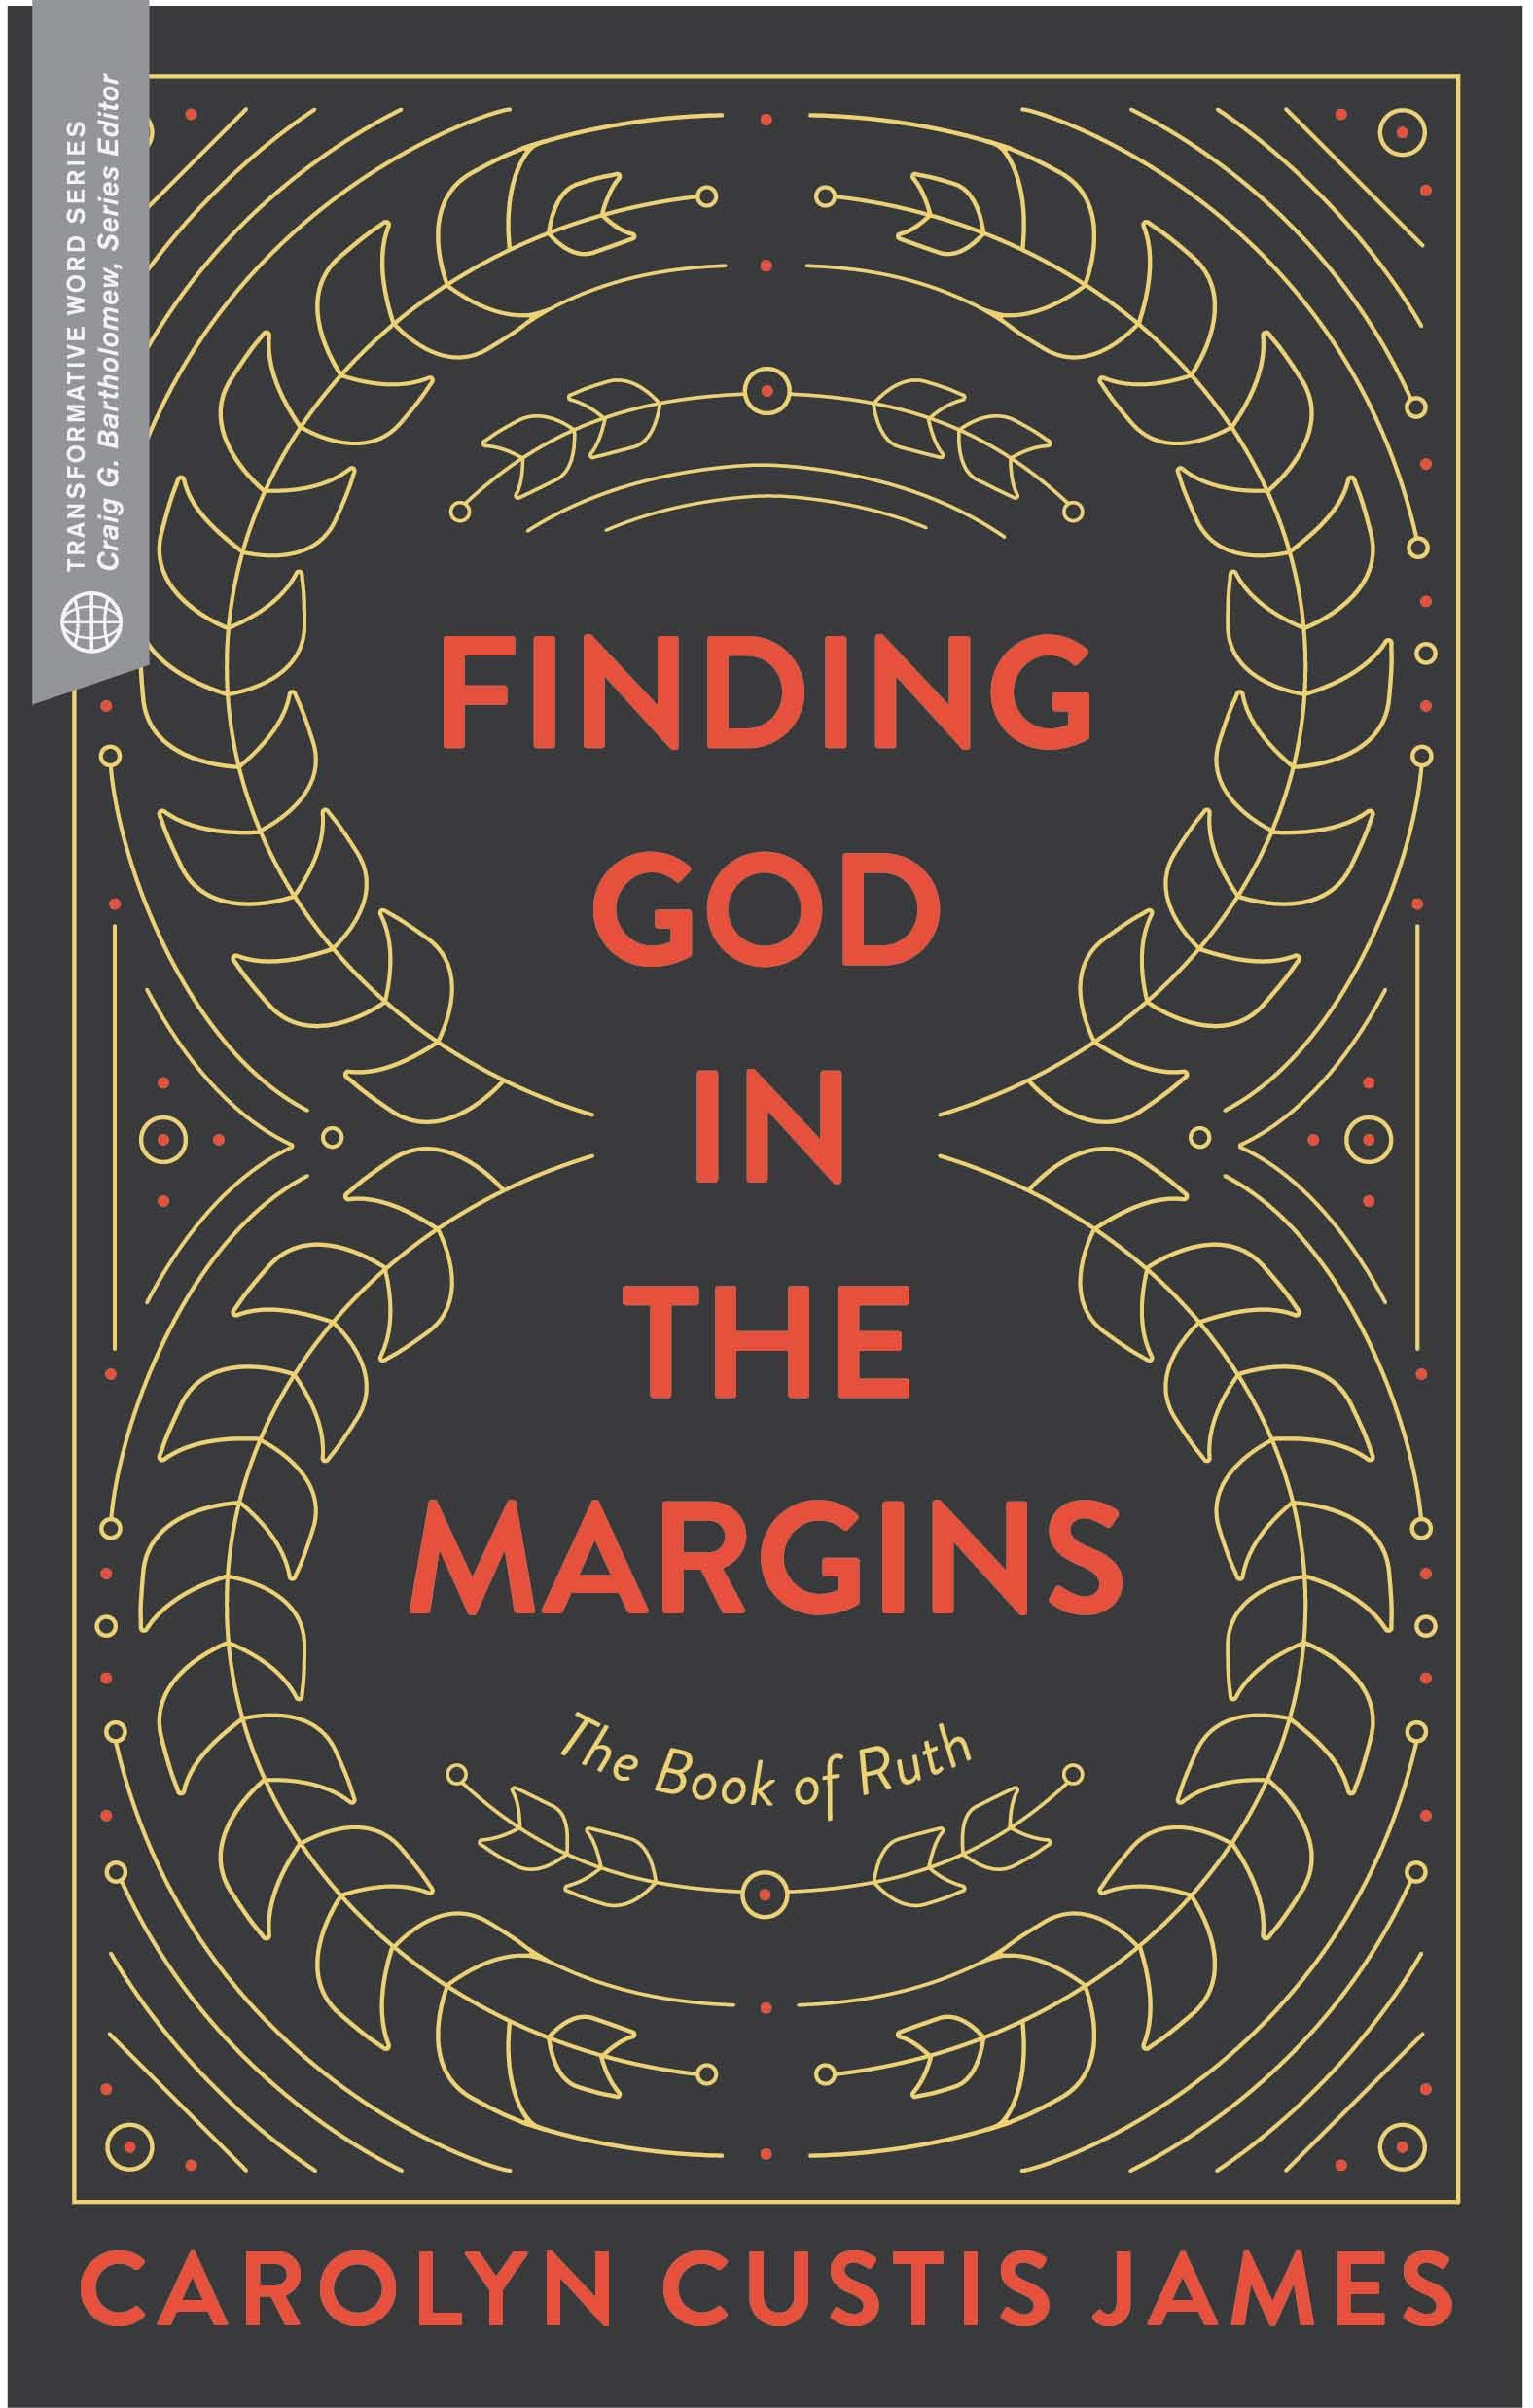 cover of the book Finding God in the Margins